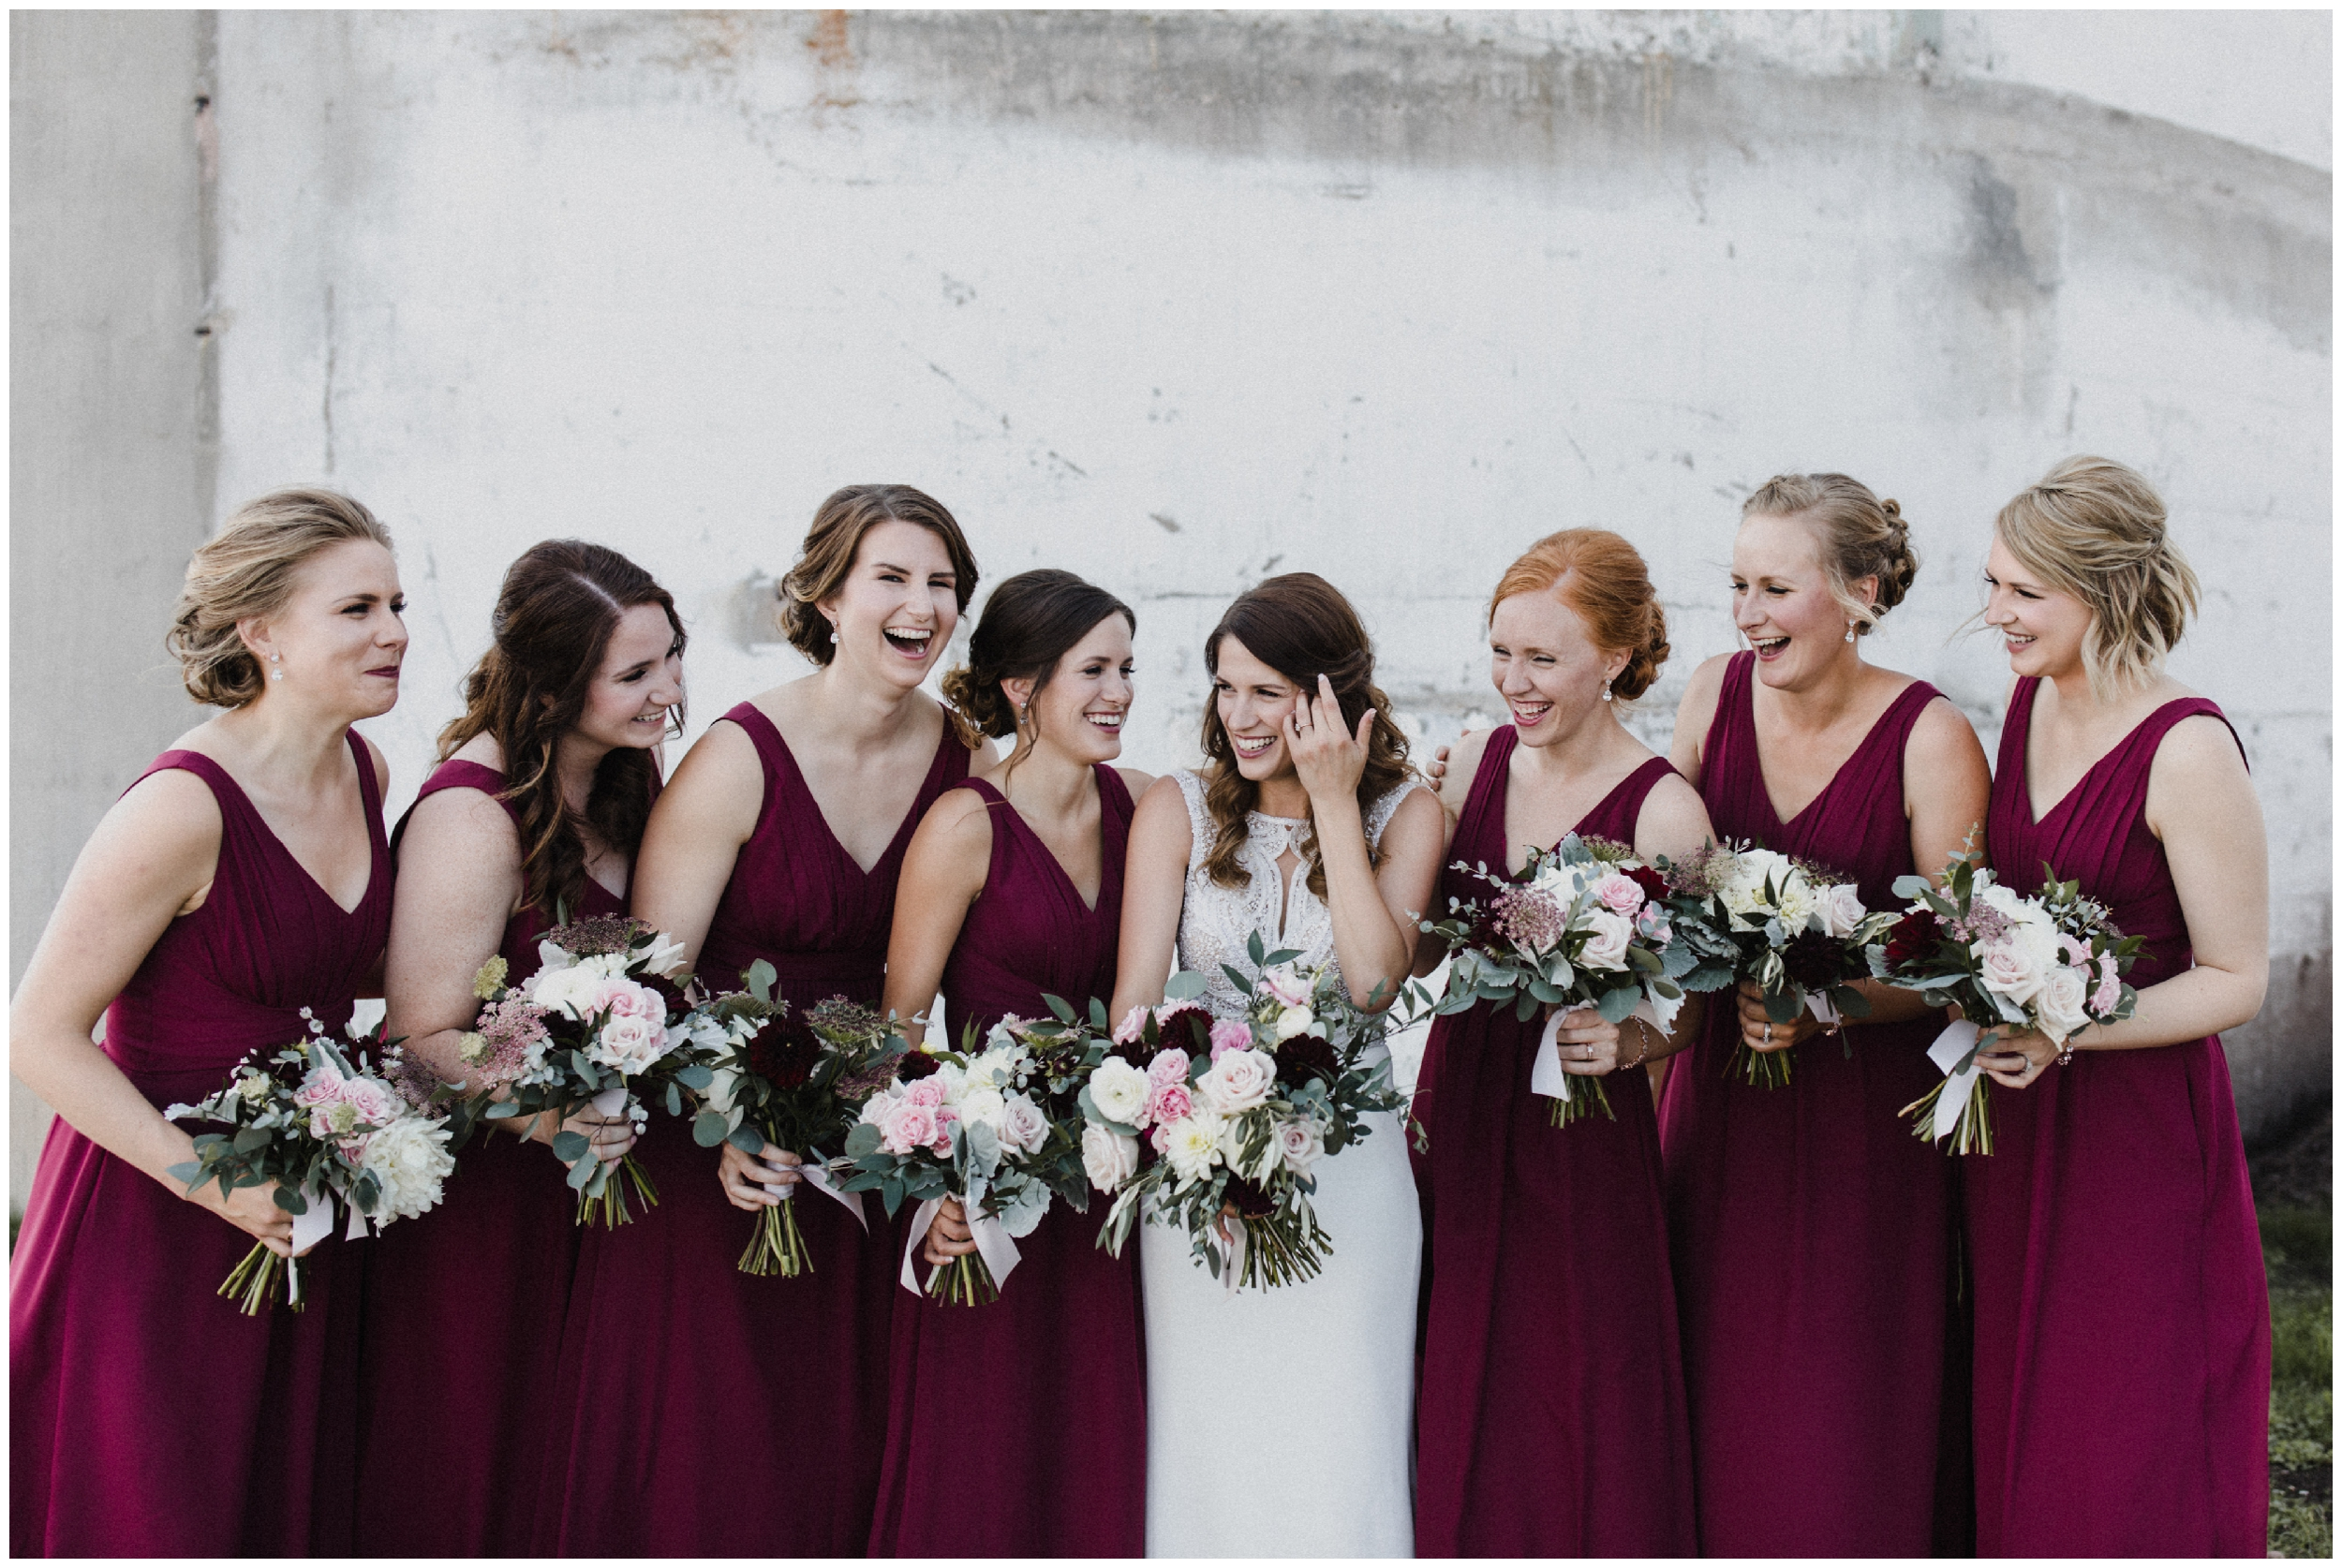 Bride and bridesmaids at industrial chic wedding in Duluth Minnesota